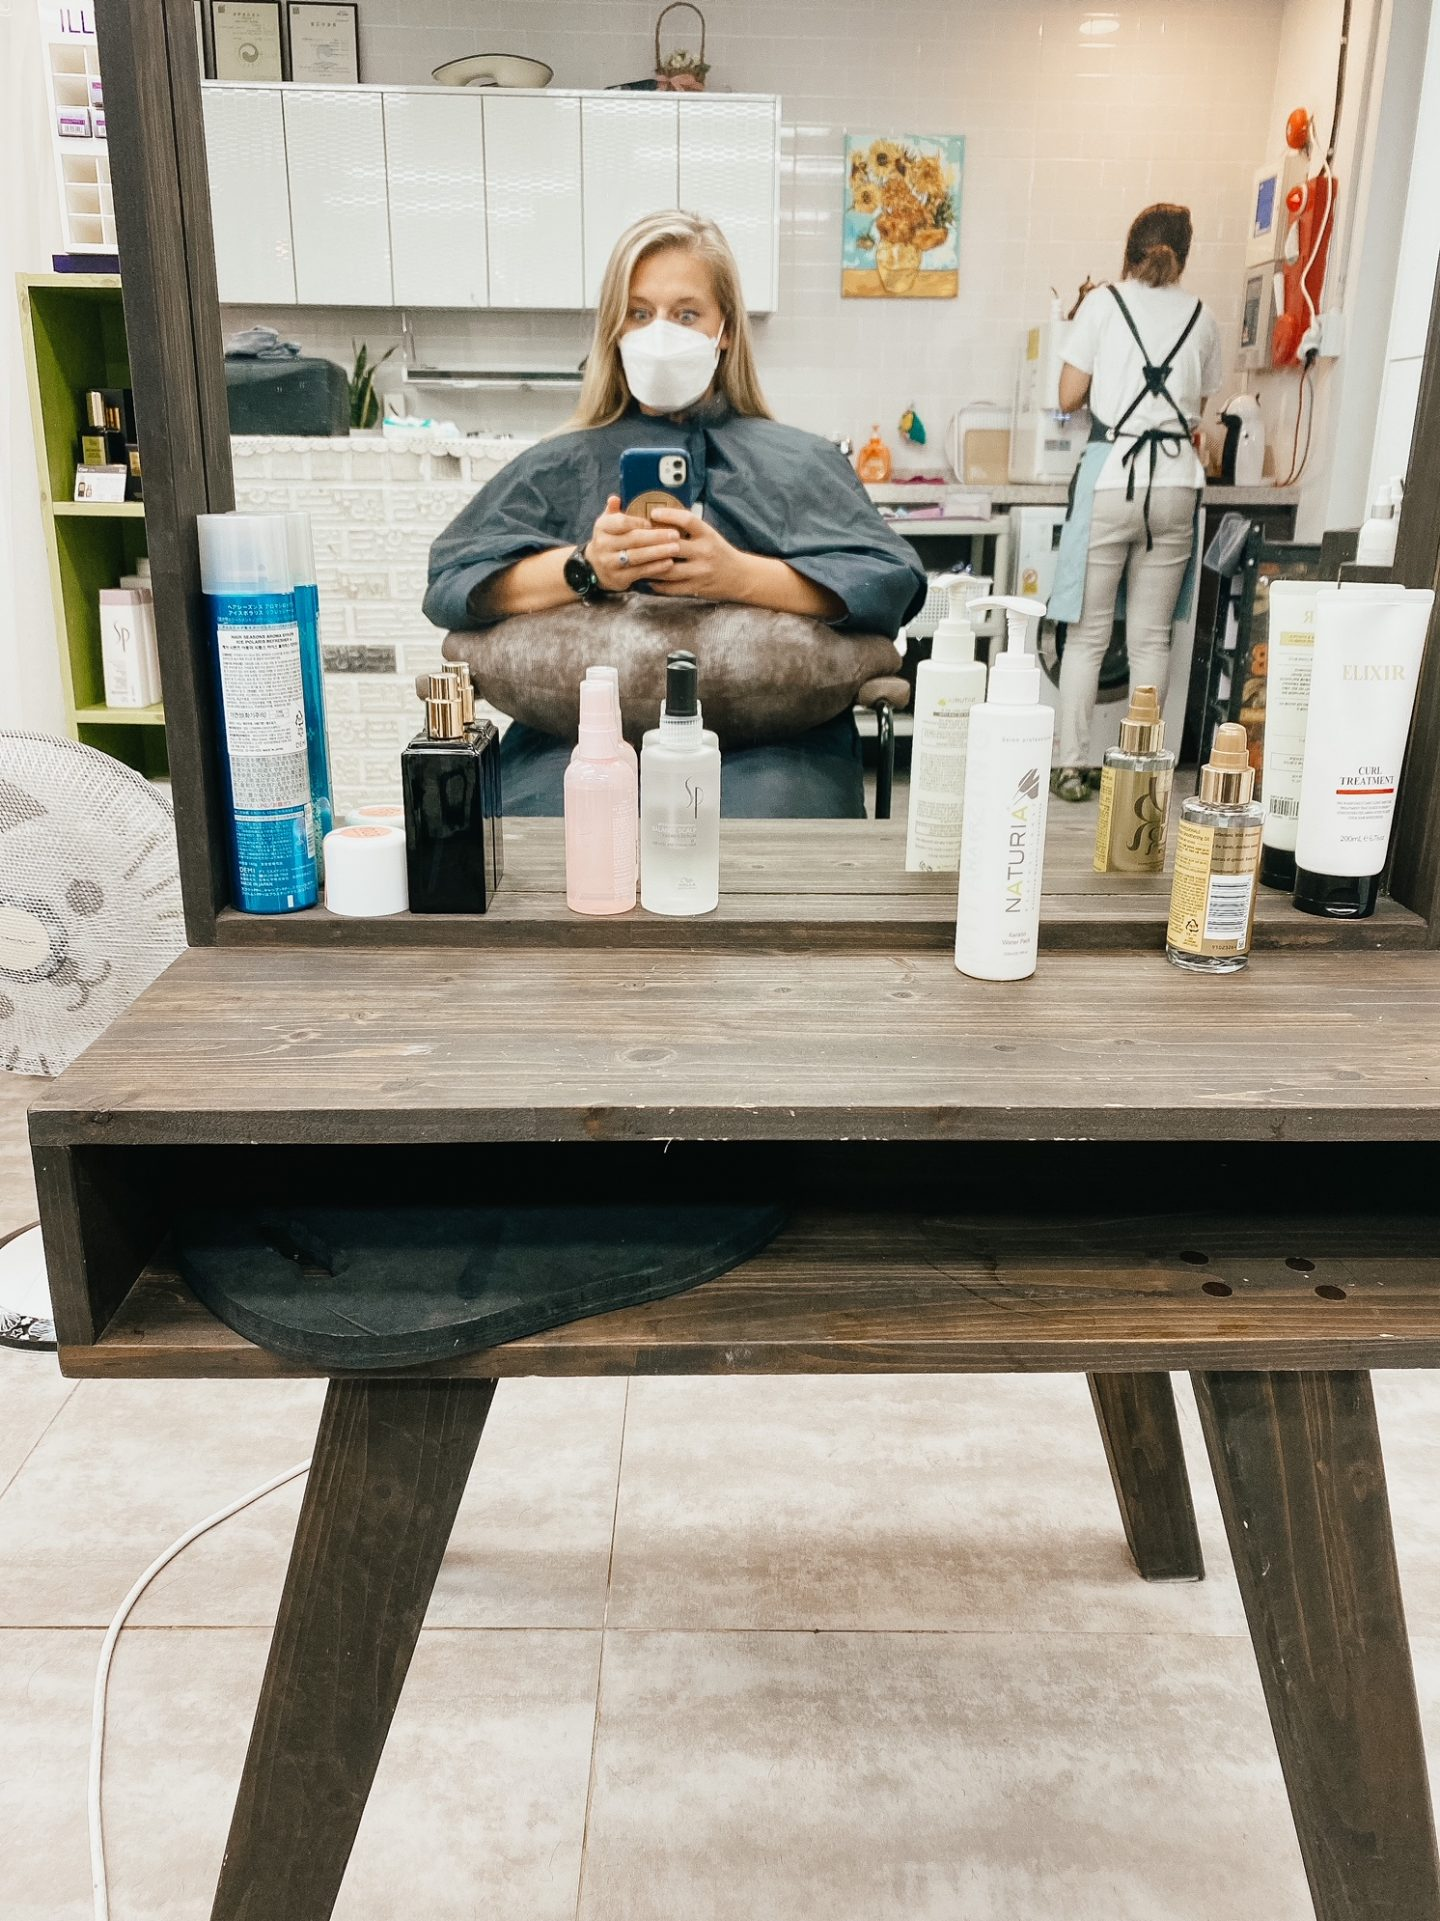 salons in south korea